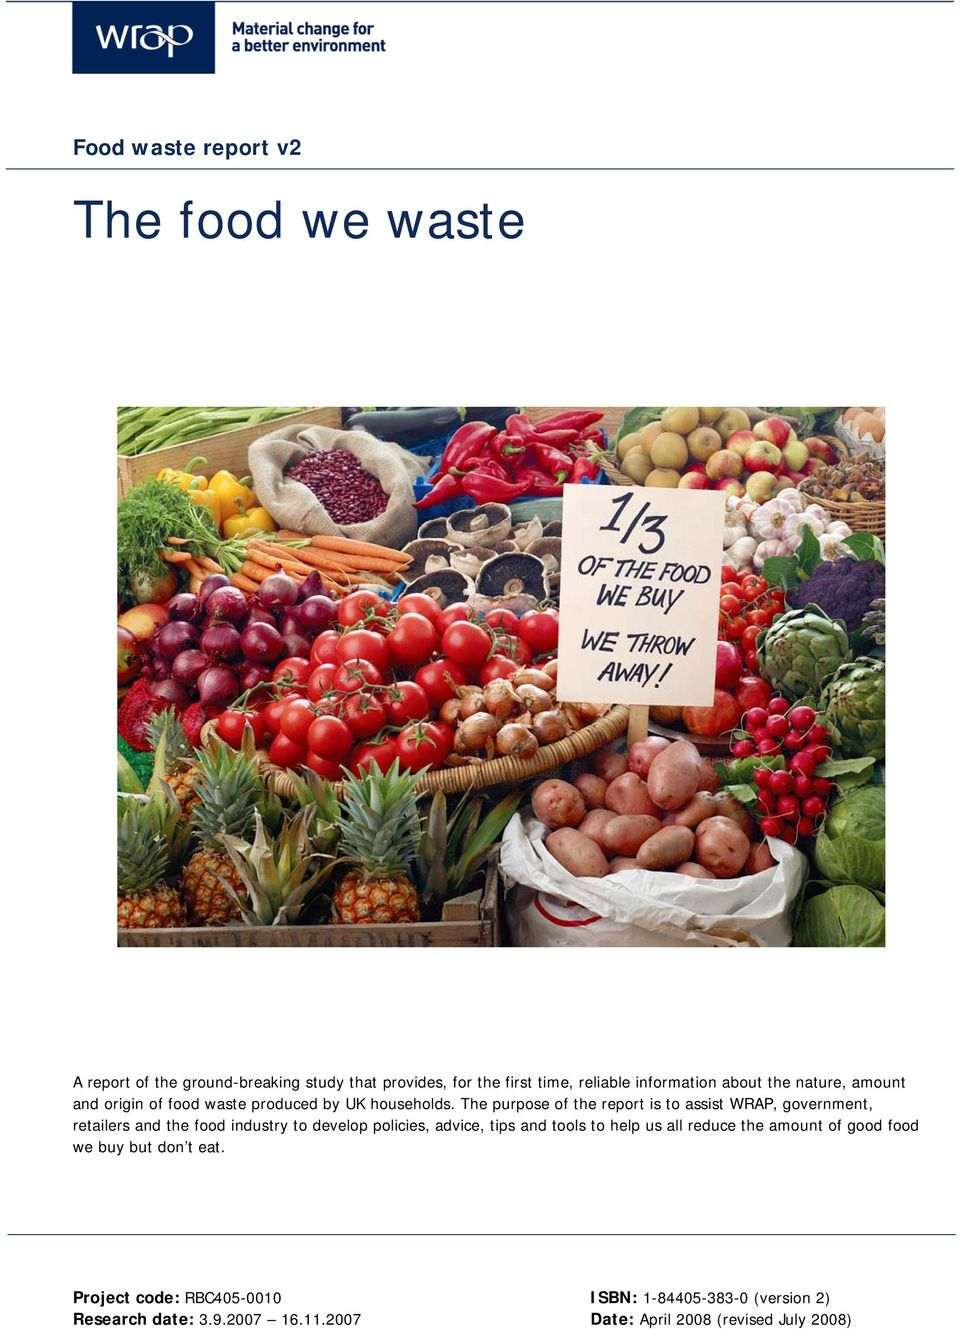 The purpose of the report is to assist WRAP, government, retailers and the food industry to develop policies, advice, tips and